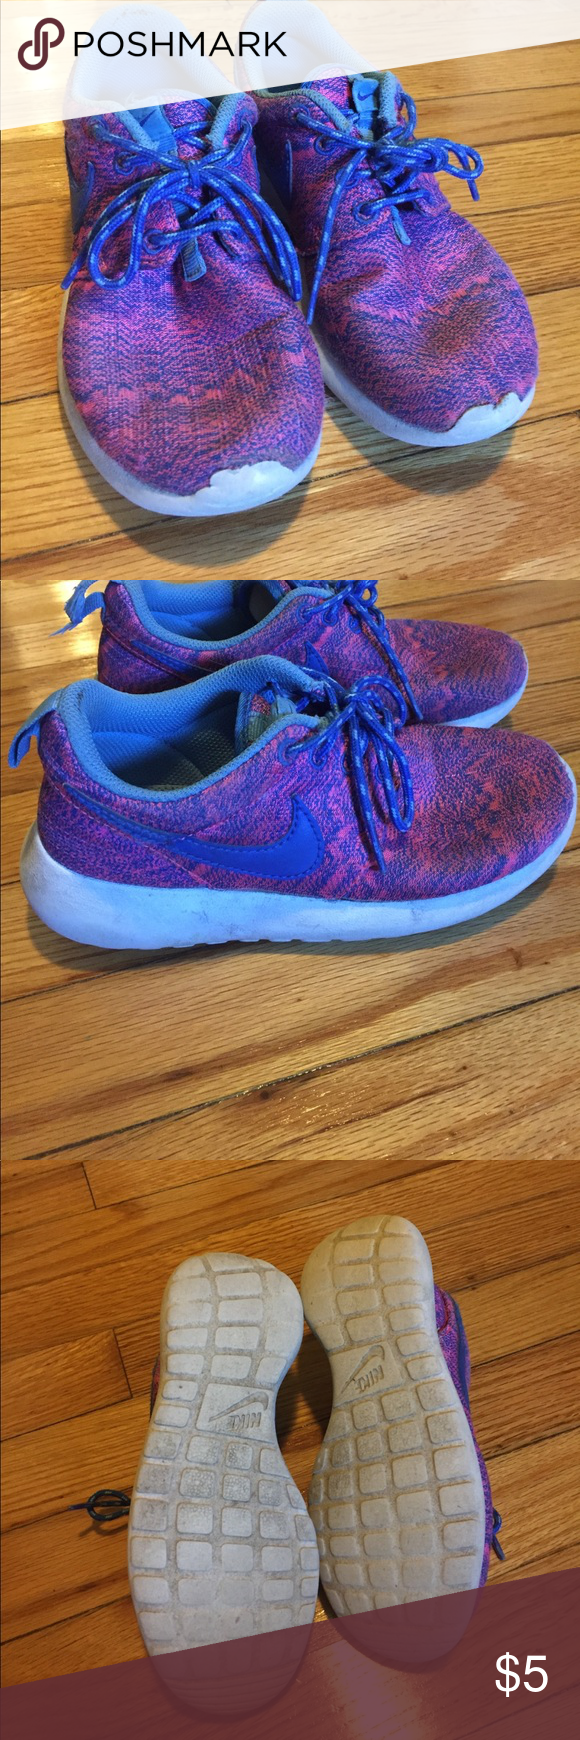 bf62bf2c42af Girl s Nike pink and blue Roches Girl s Nike pink and blue Roches. Worn  numerous times but still in good condition. Nike Shoes Sneakers